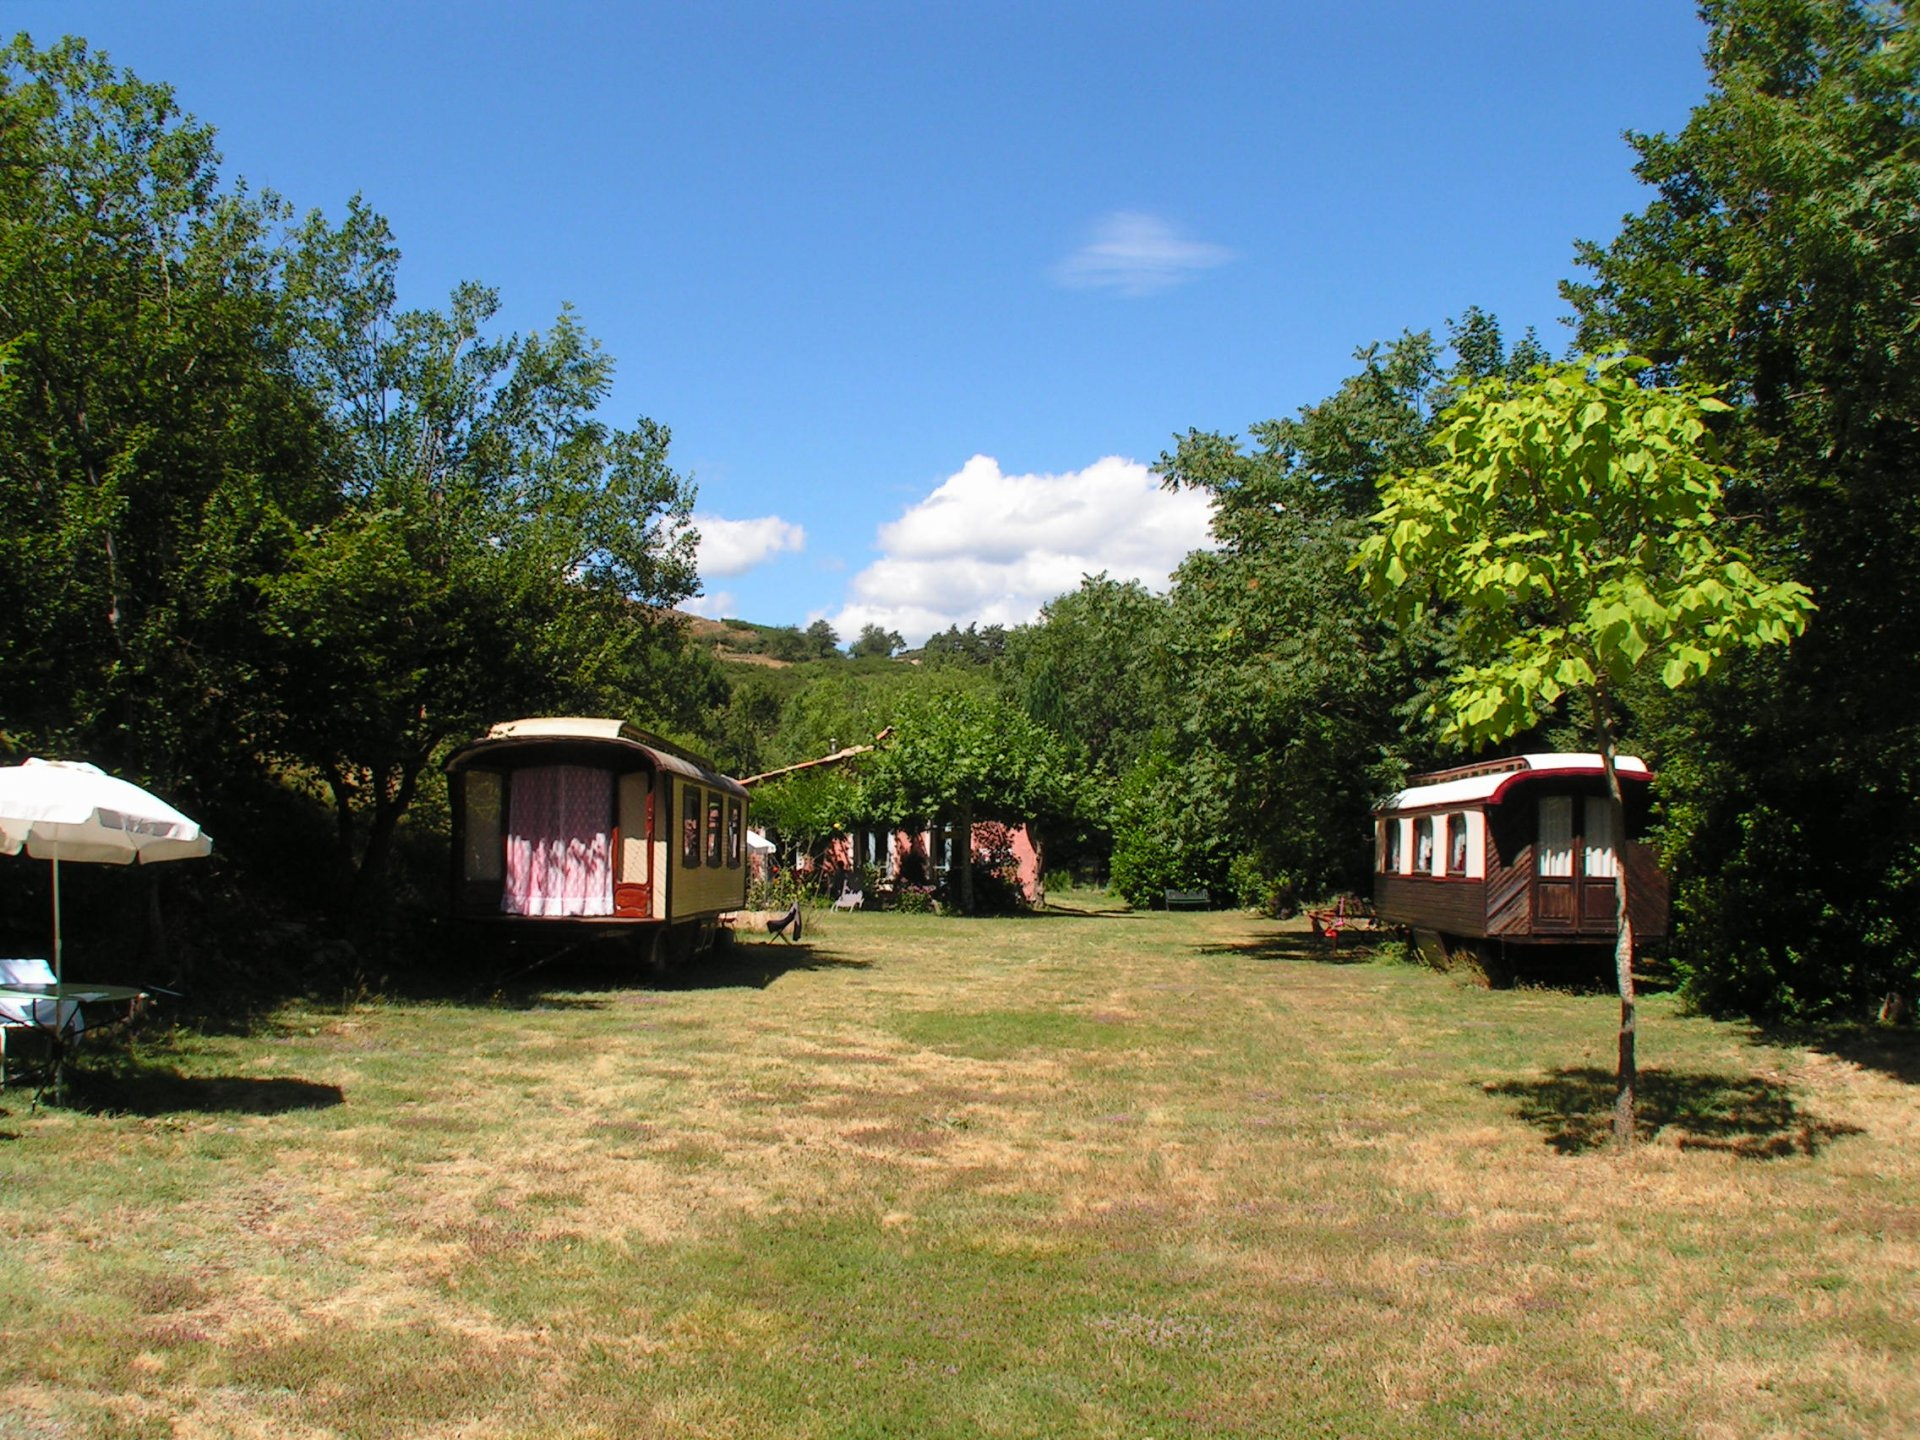 Camping of paardendomein in Ajoux - Ardèche